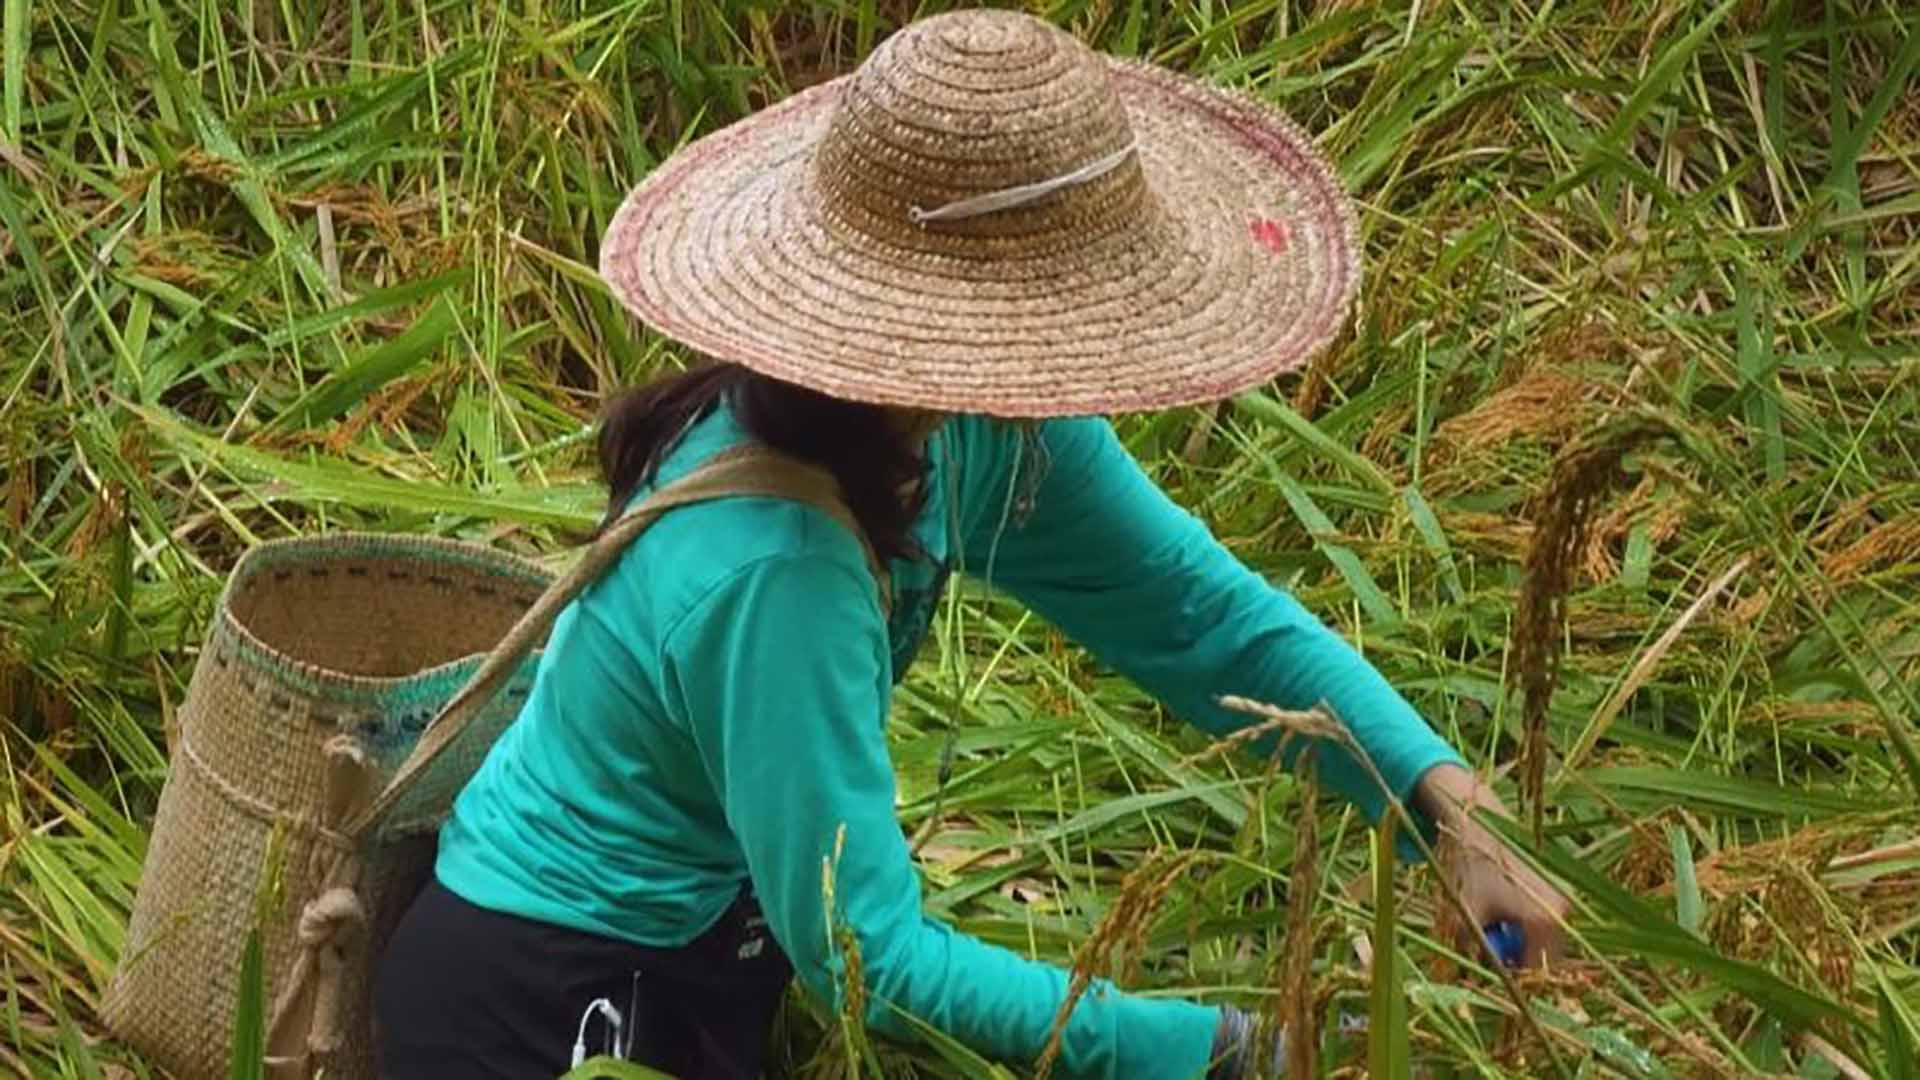 person with straw hat and straw basket on back snipping leaves in field of tall leaves